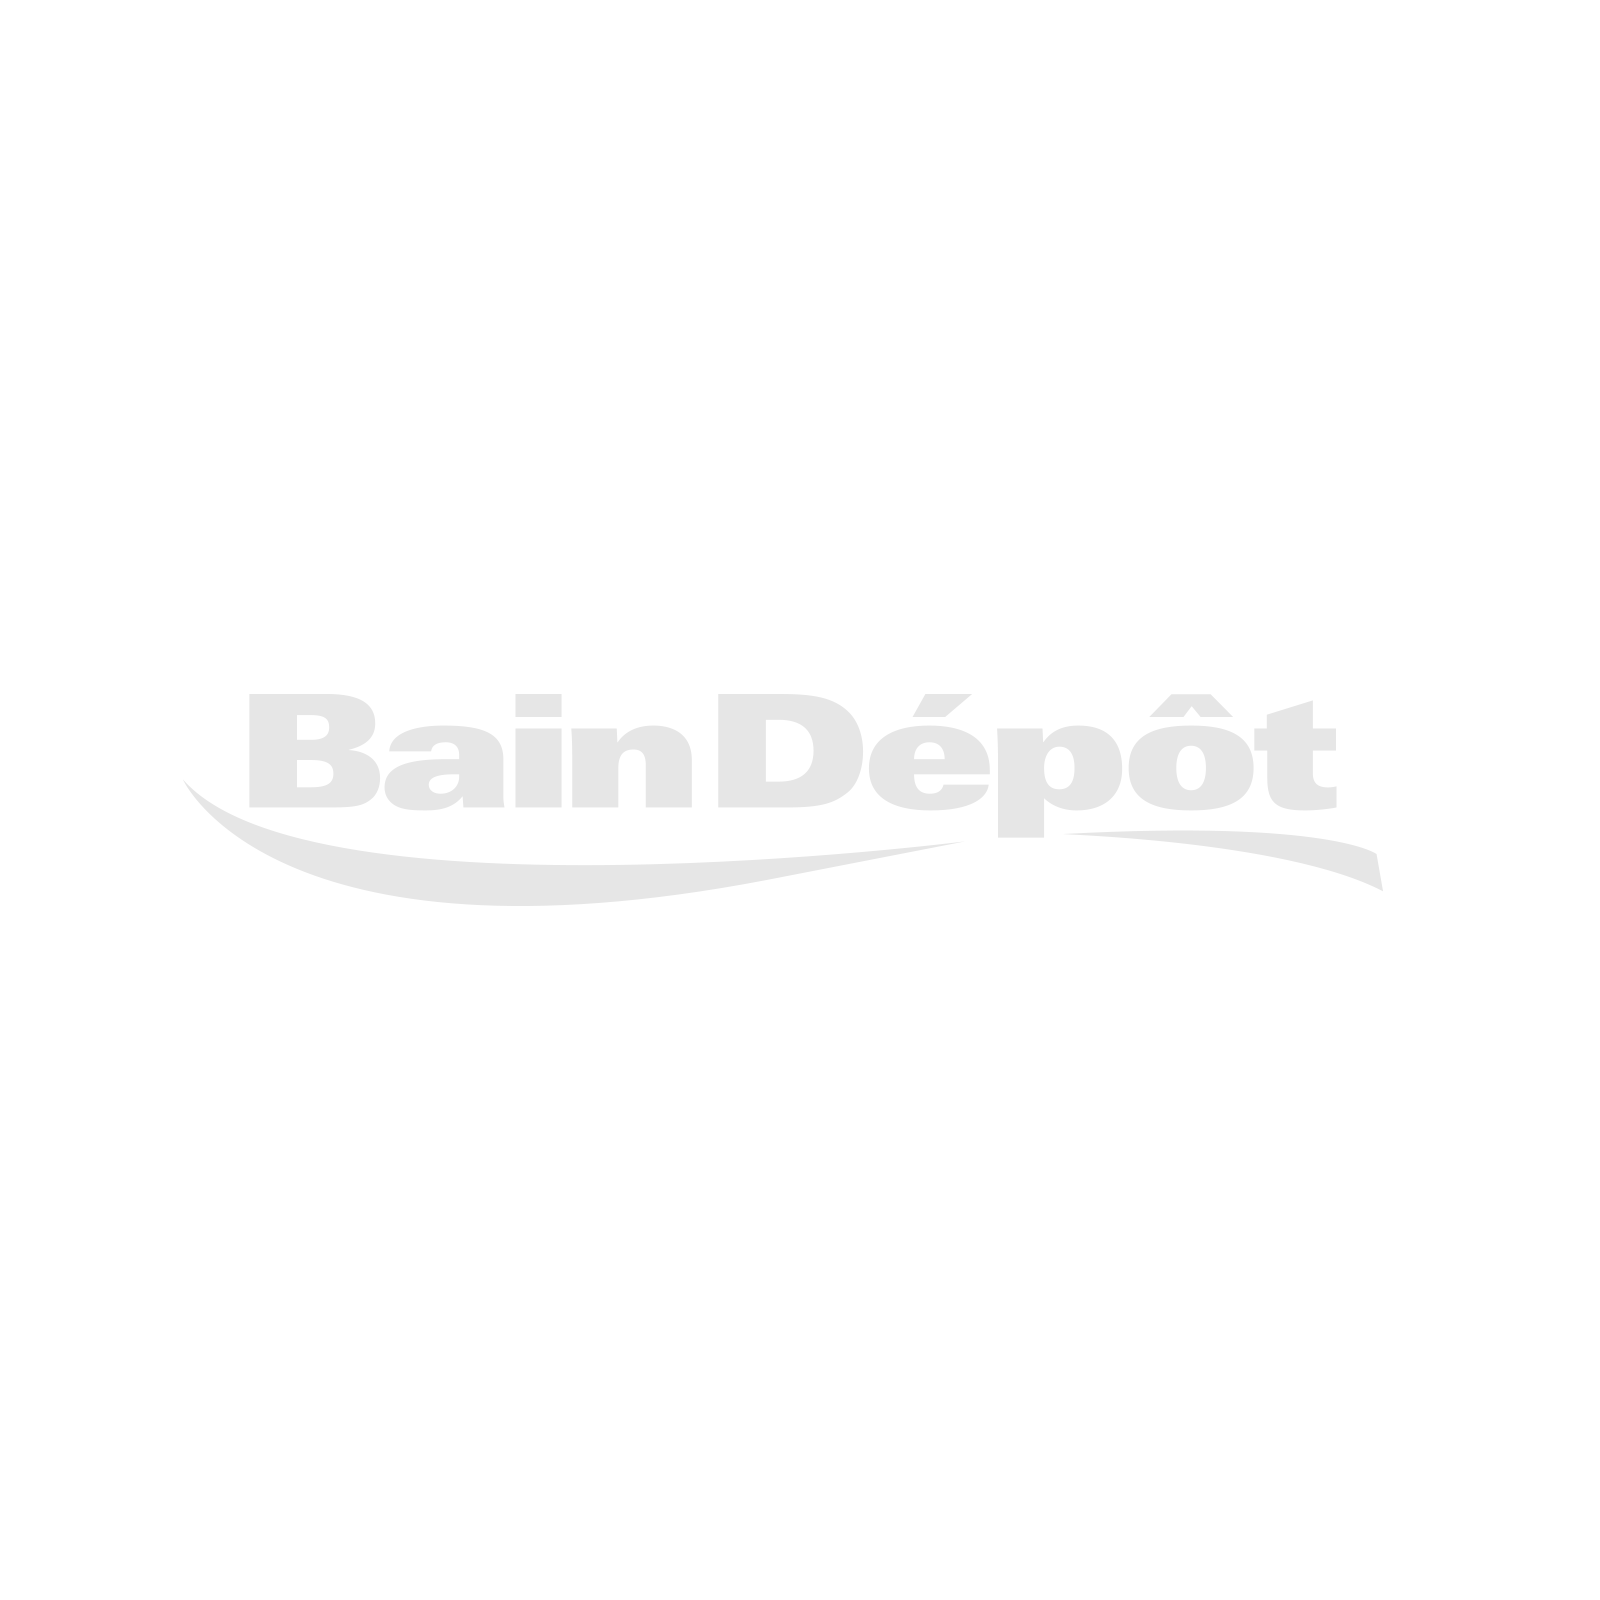 Chrome single-hole bathroom sink faucet with plate and pop-up